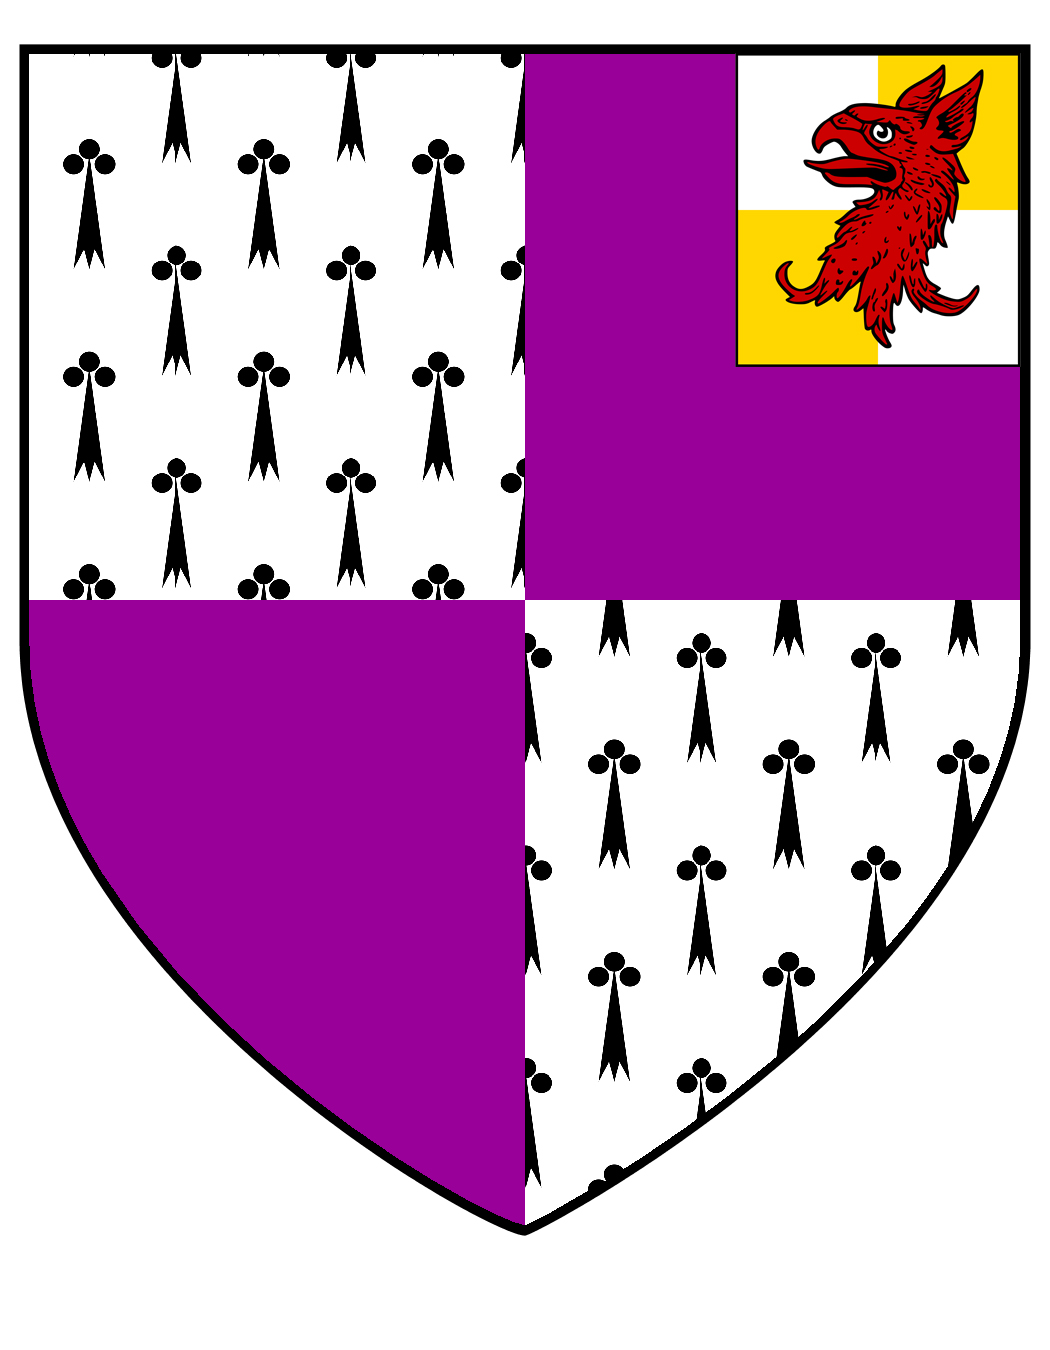 Augementation of Arms Example 1